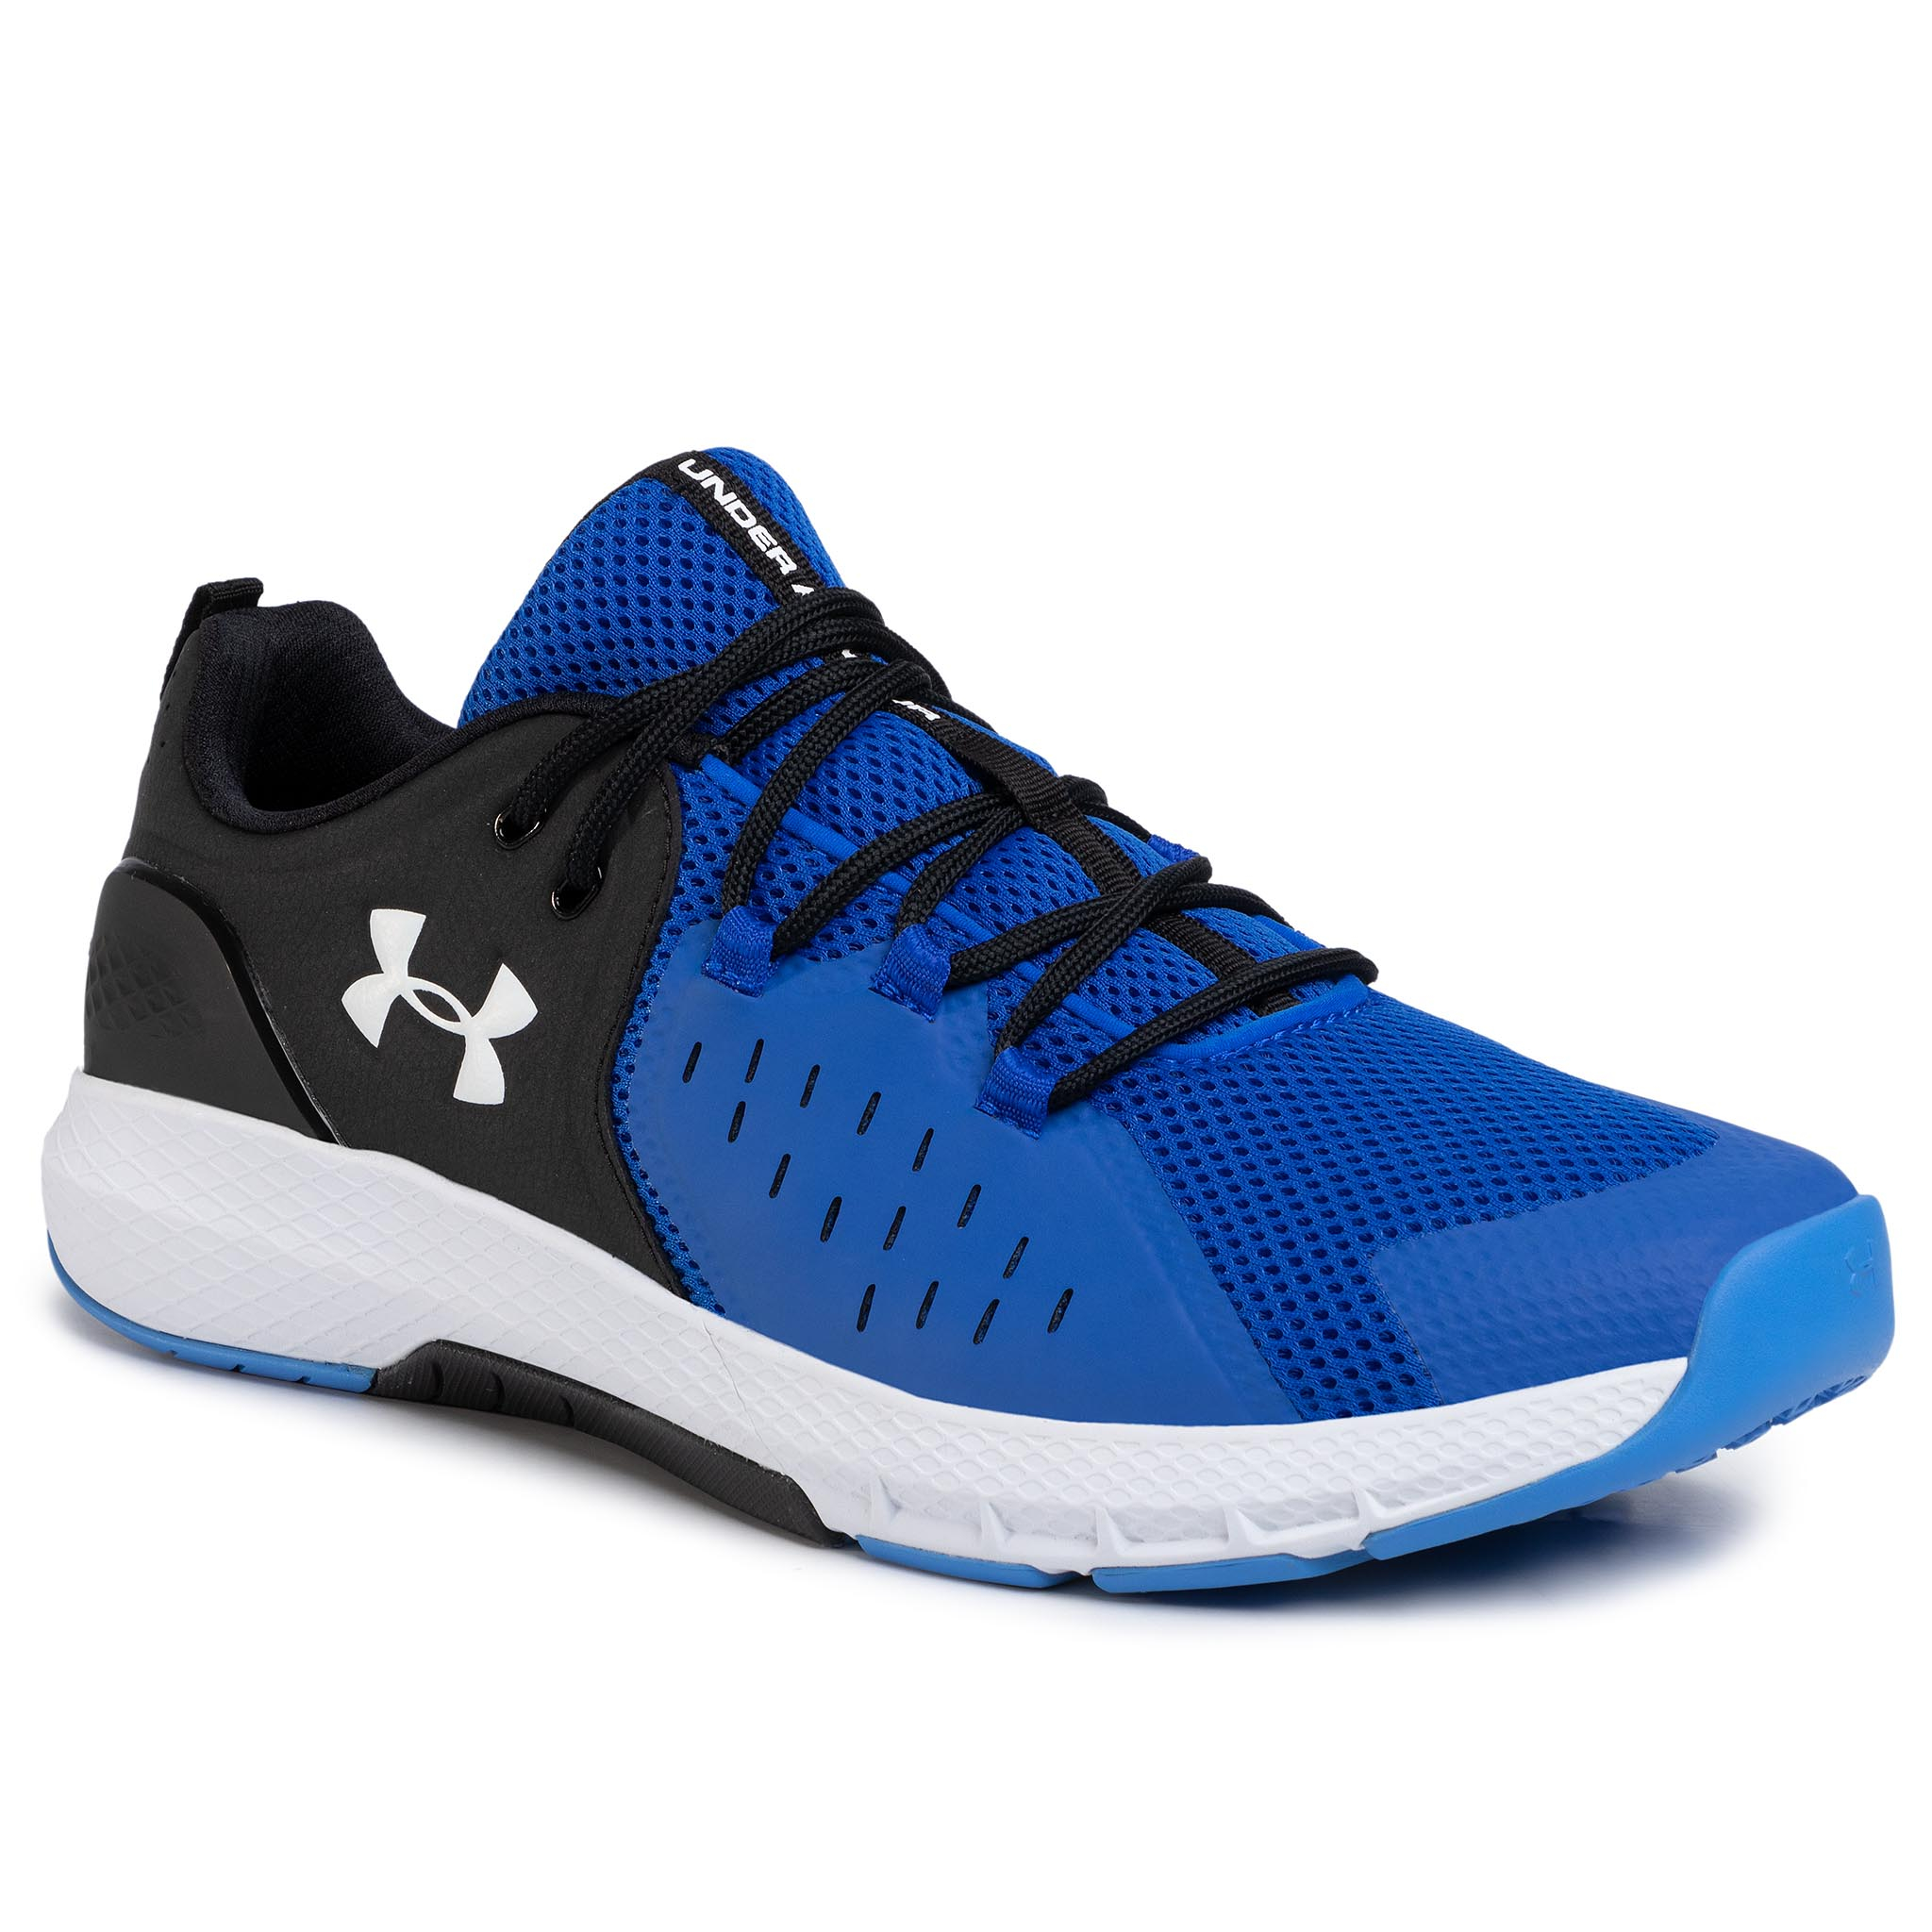 Pantofi UNDER ARMOUR - Ua Charged Commit Tr 2 3022027-402 Blu